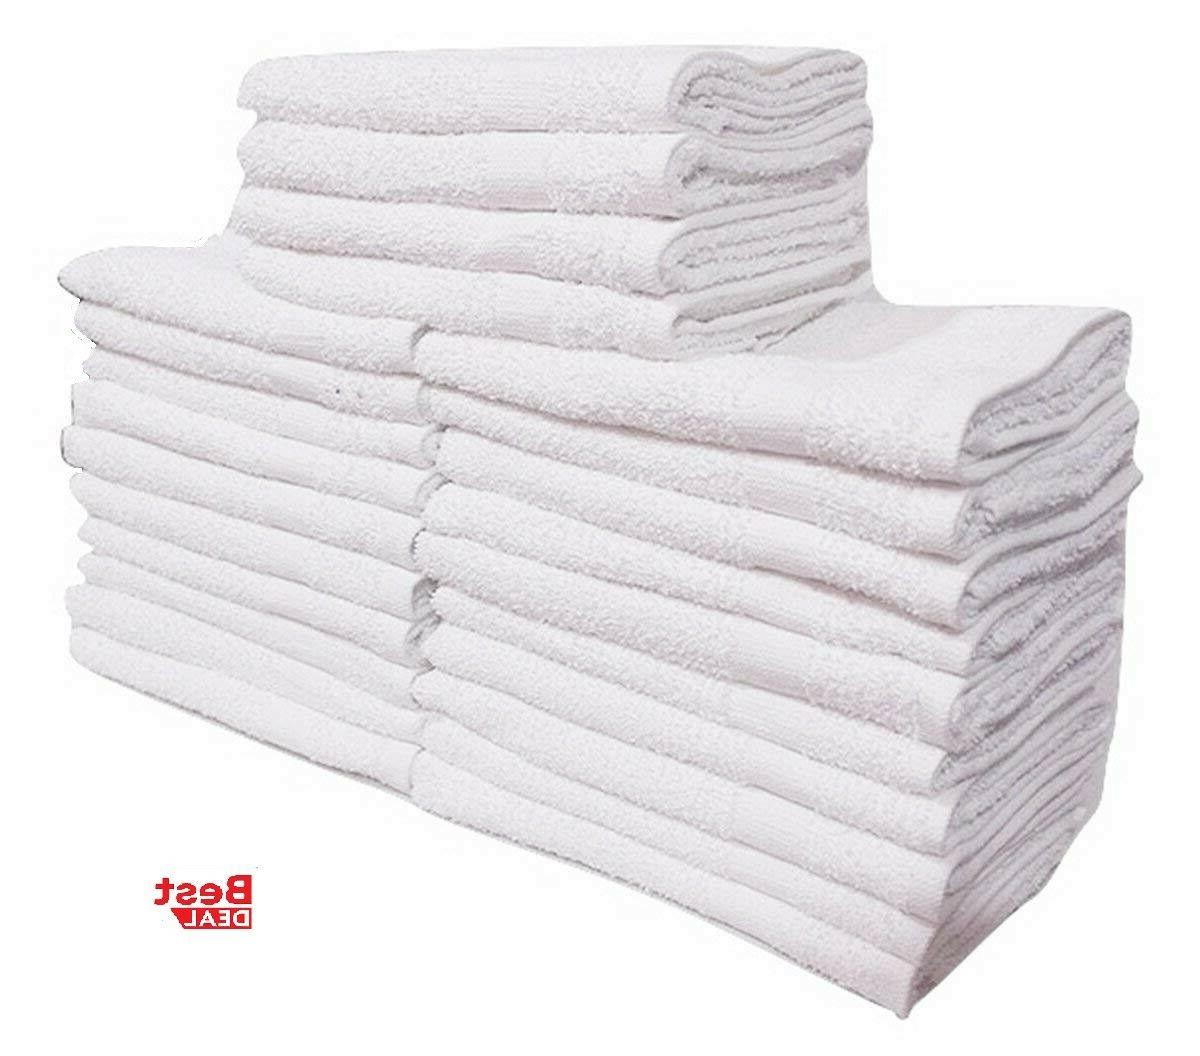 24 PACK HEAVY GYM TOWELS 100% COTTON x 27